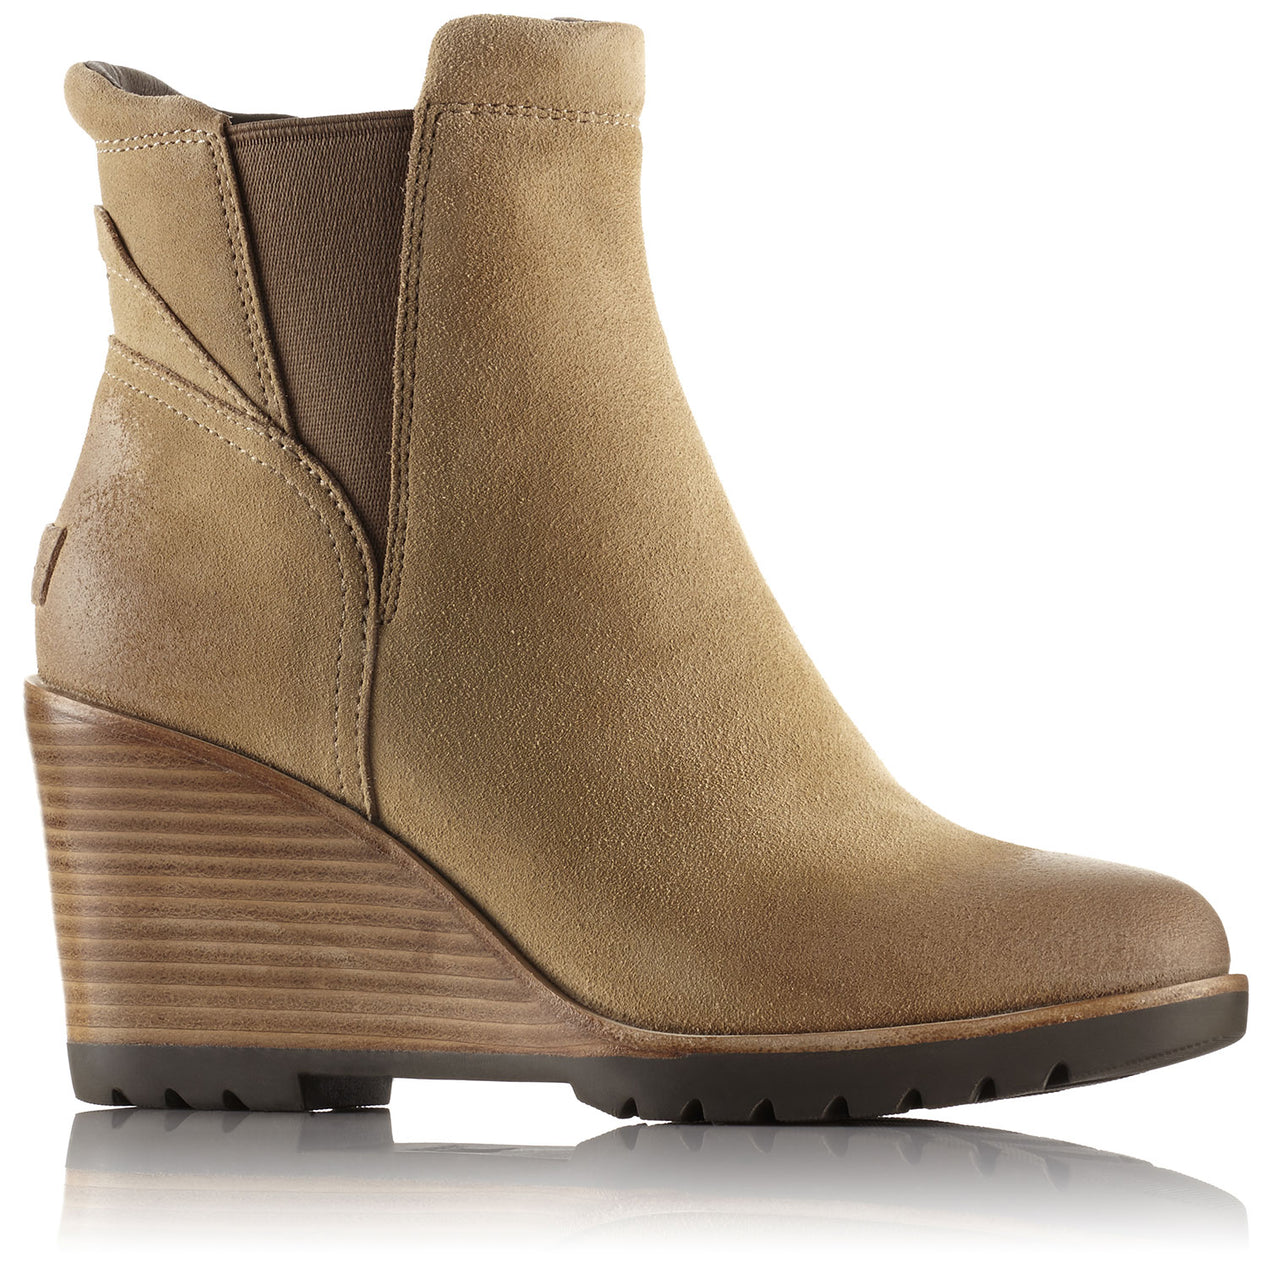 7a300a42718 Sorel Women s After Hours Chelsea Suede Boots